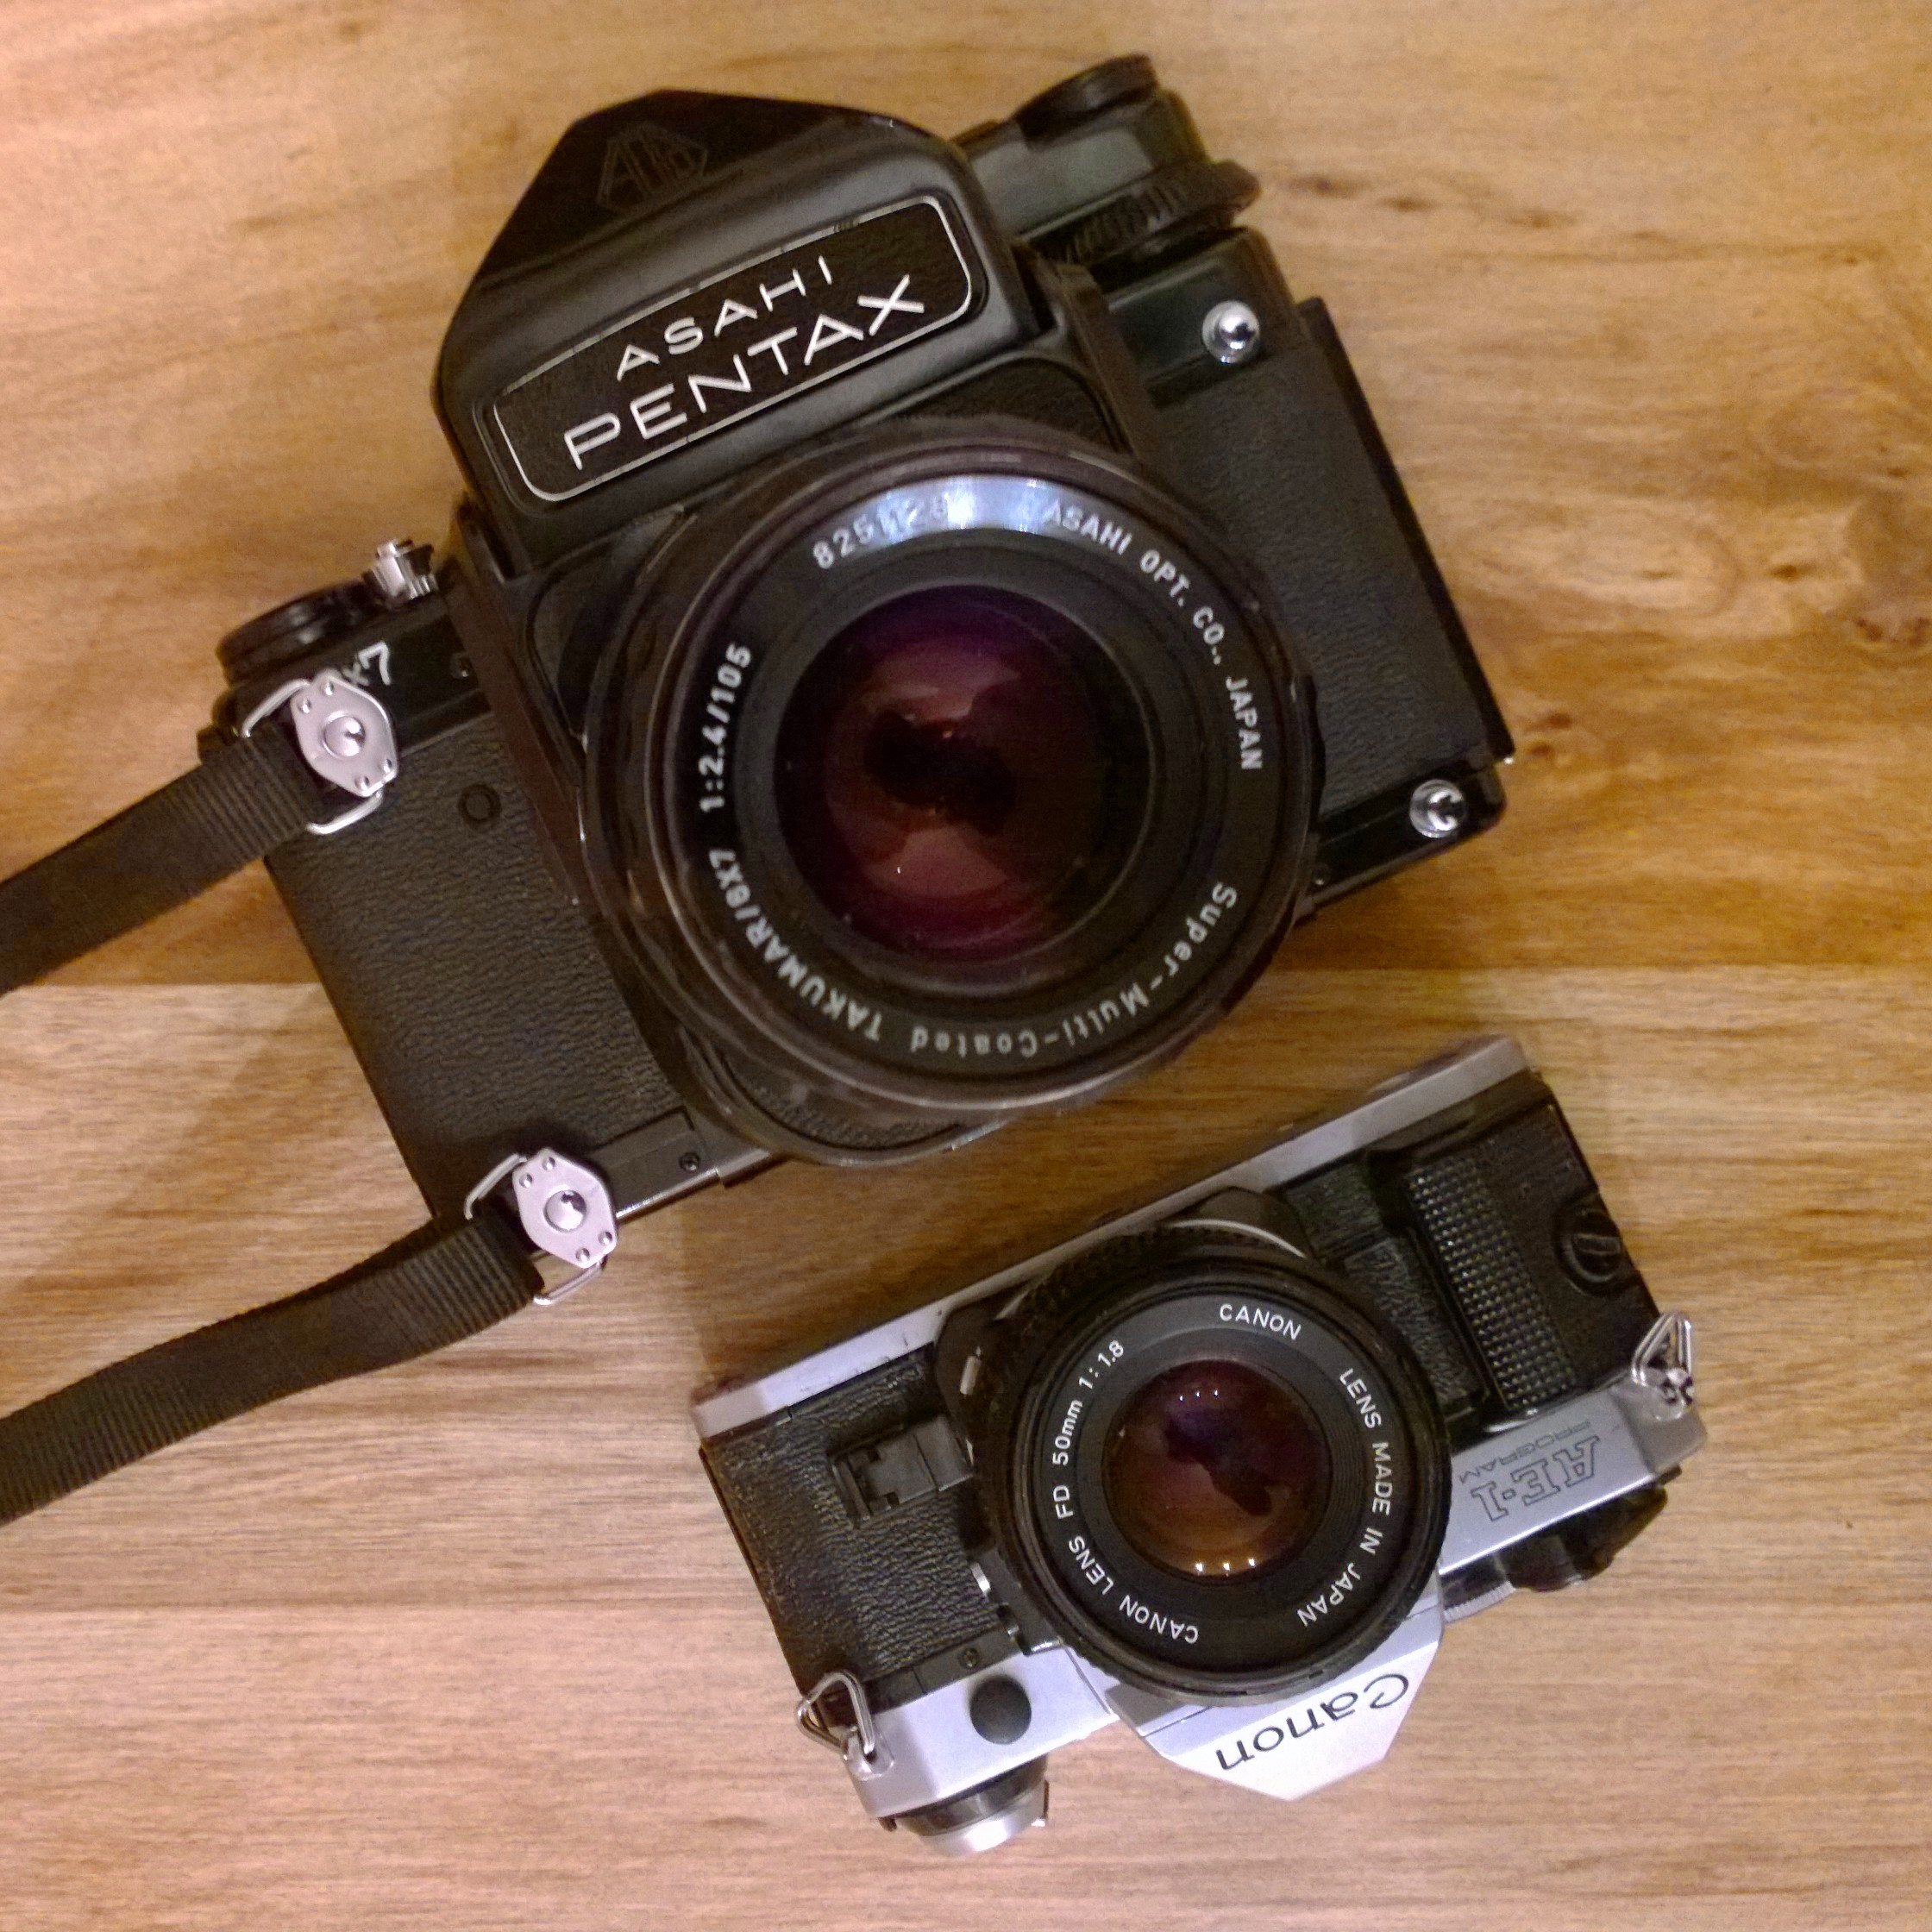 The Pentax 6x7 compared to a 35mm Canon AE-1, both shown with standard lenses.